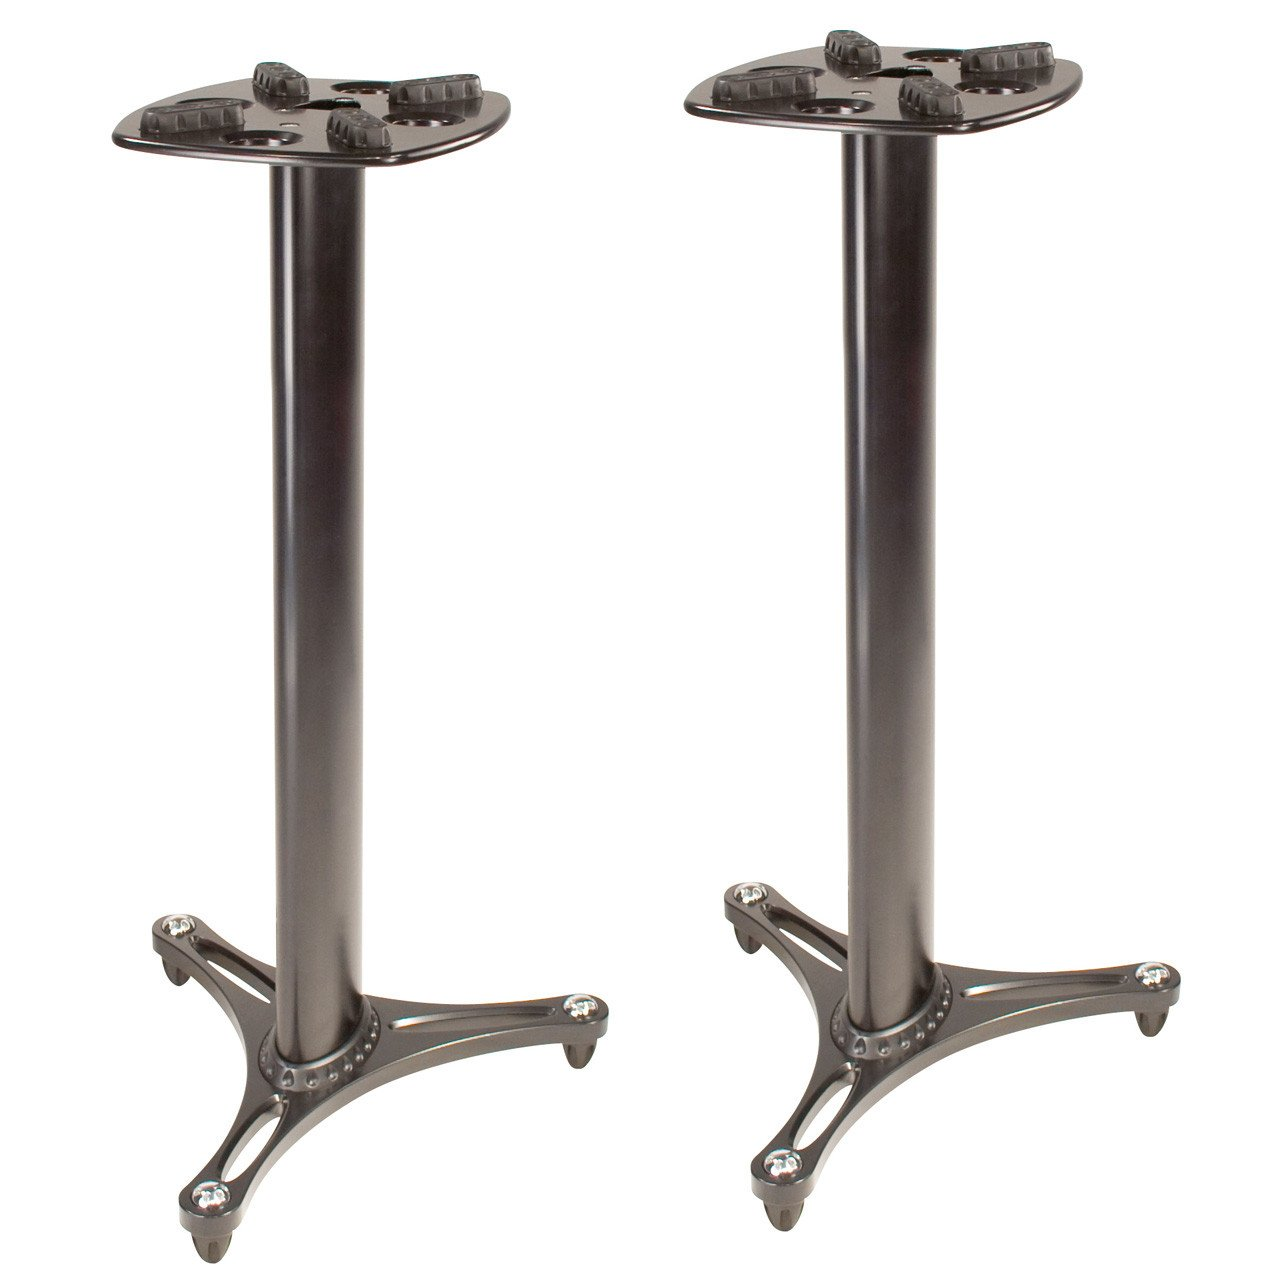 Ultimate Support MS-90/36B studio monitor stands